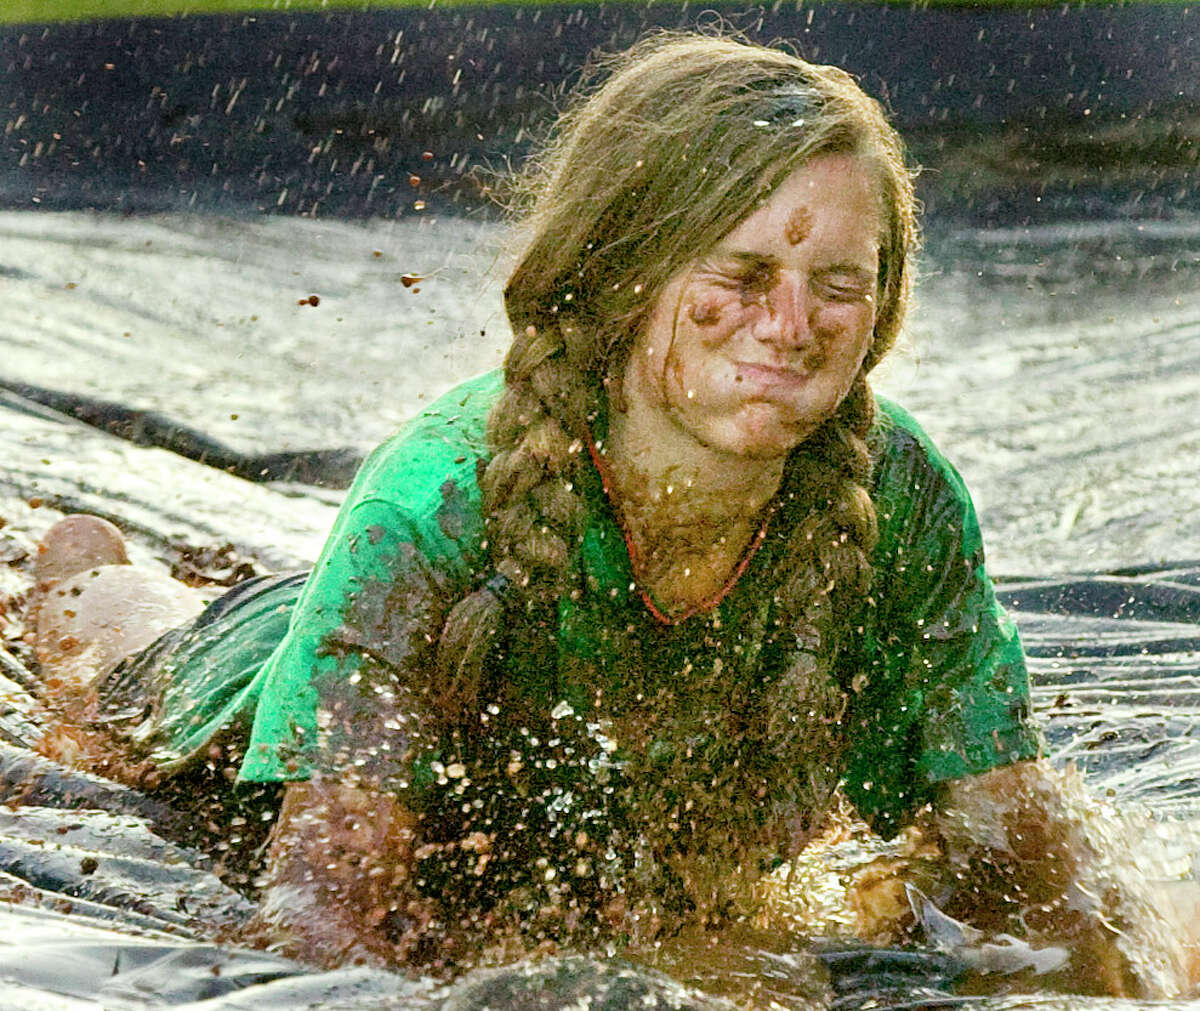 In a Sunday photo, Haley Knable slides through a pool of chocolate syrup, cooking oil and water Sunday at Wesley Memorial United Methodist Church in Decatur, Ala.